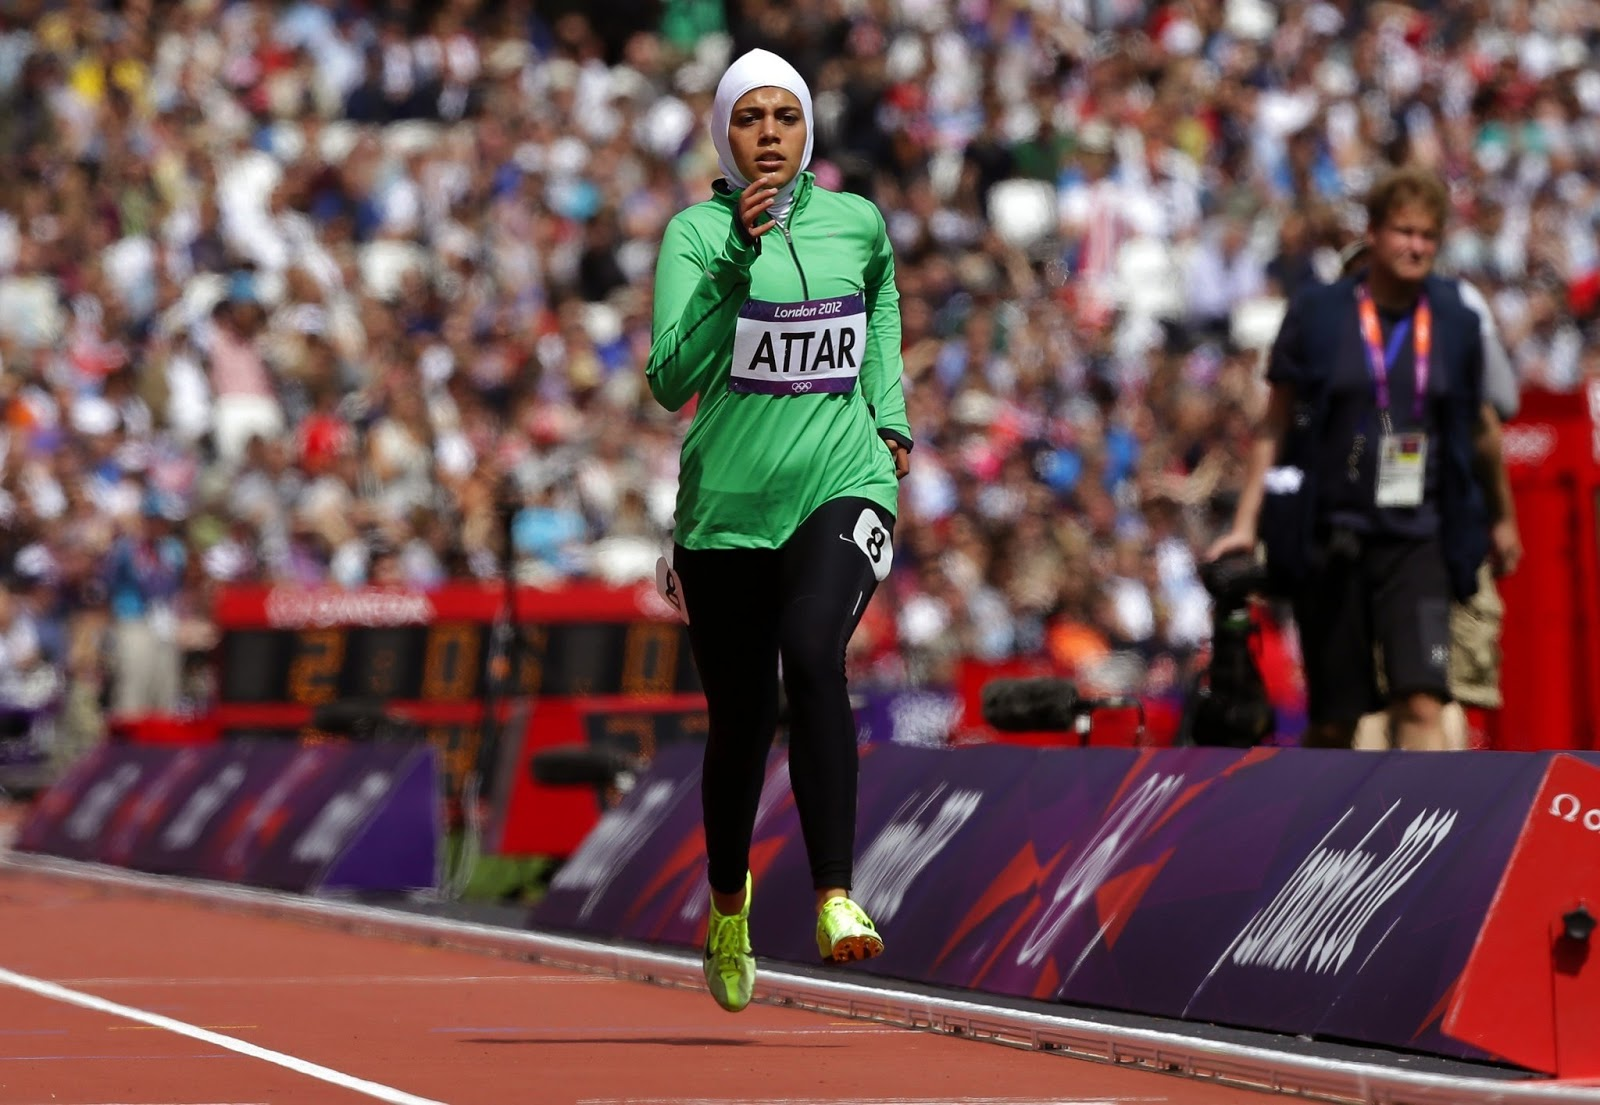 The Nike PRO Hijab Will Be Launched In The Spring Of Hijab - Nike is going to launch a hijab collection developed together with muslim athletes